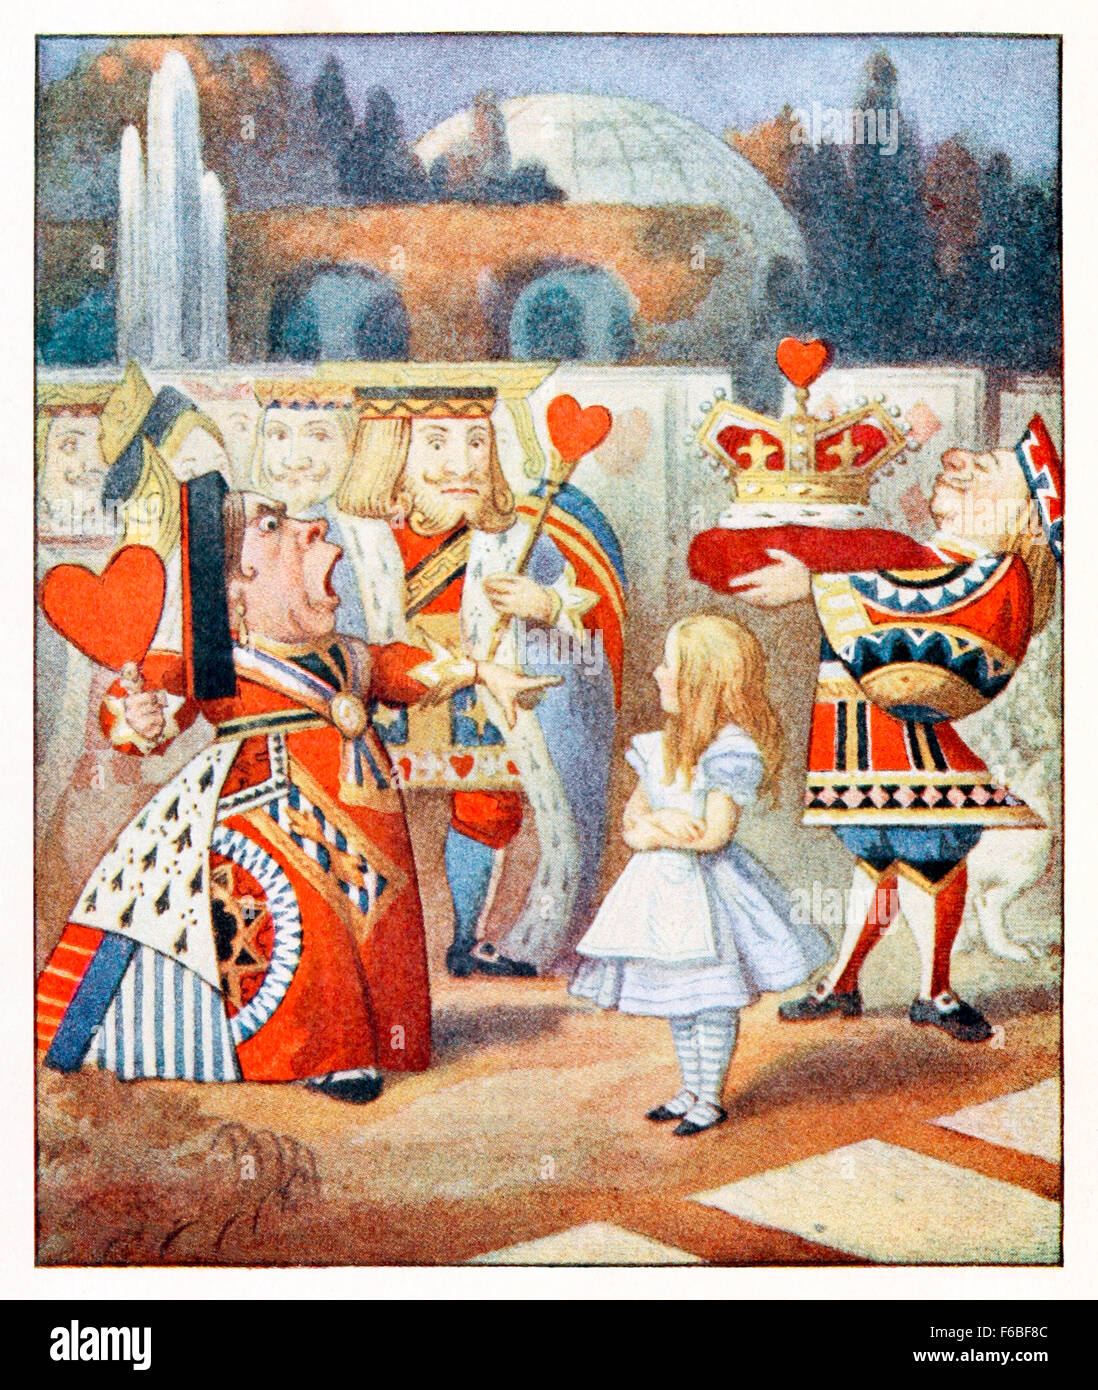 'Off with her head! Off with -' from 'Alice's Adventures in Wonderland'  by Lewis Carroll (1832 - Stock Image